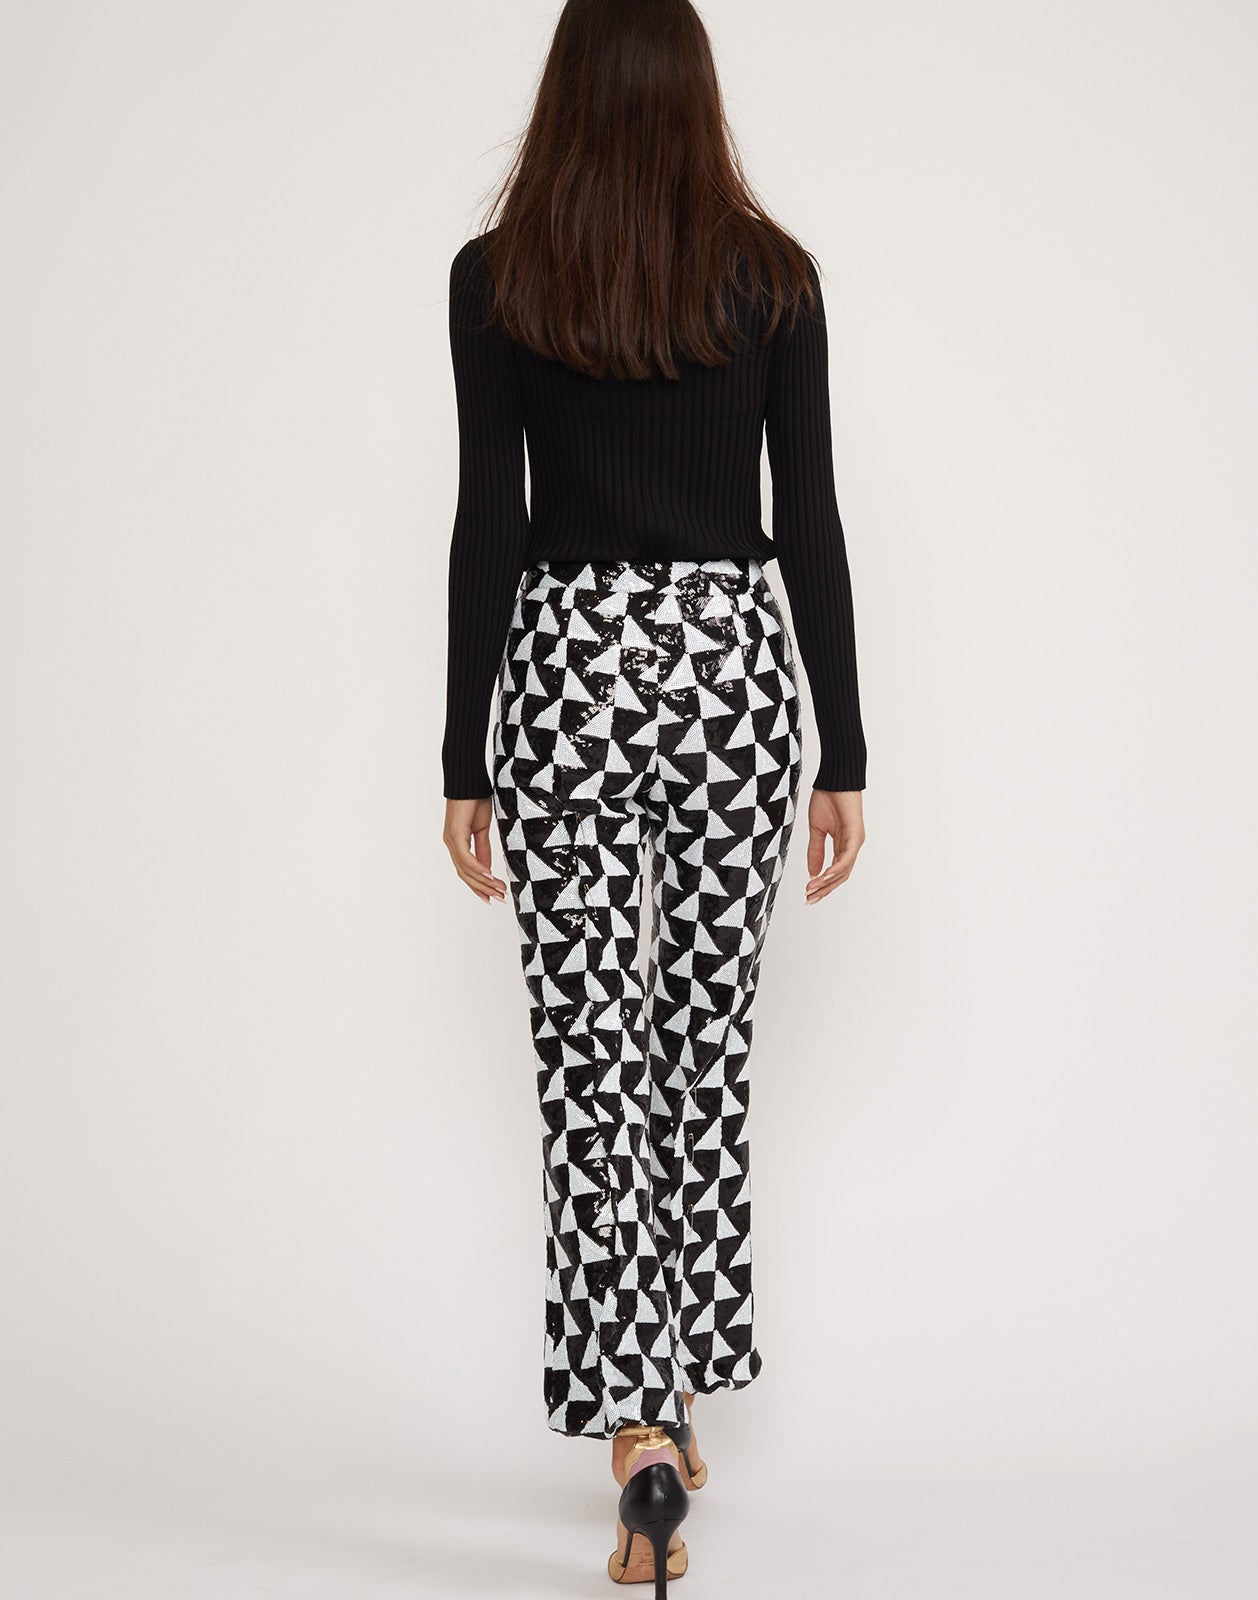 Back view of the Illusion flare pants in black and white sequins.